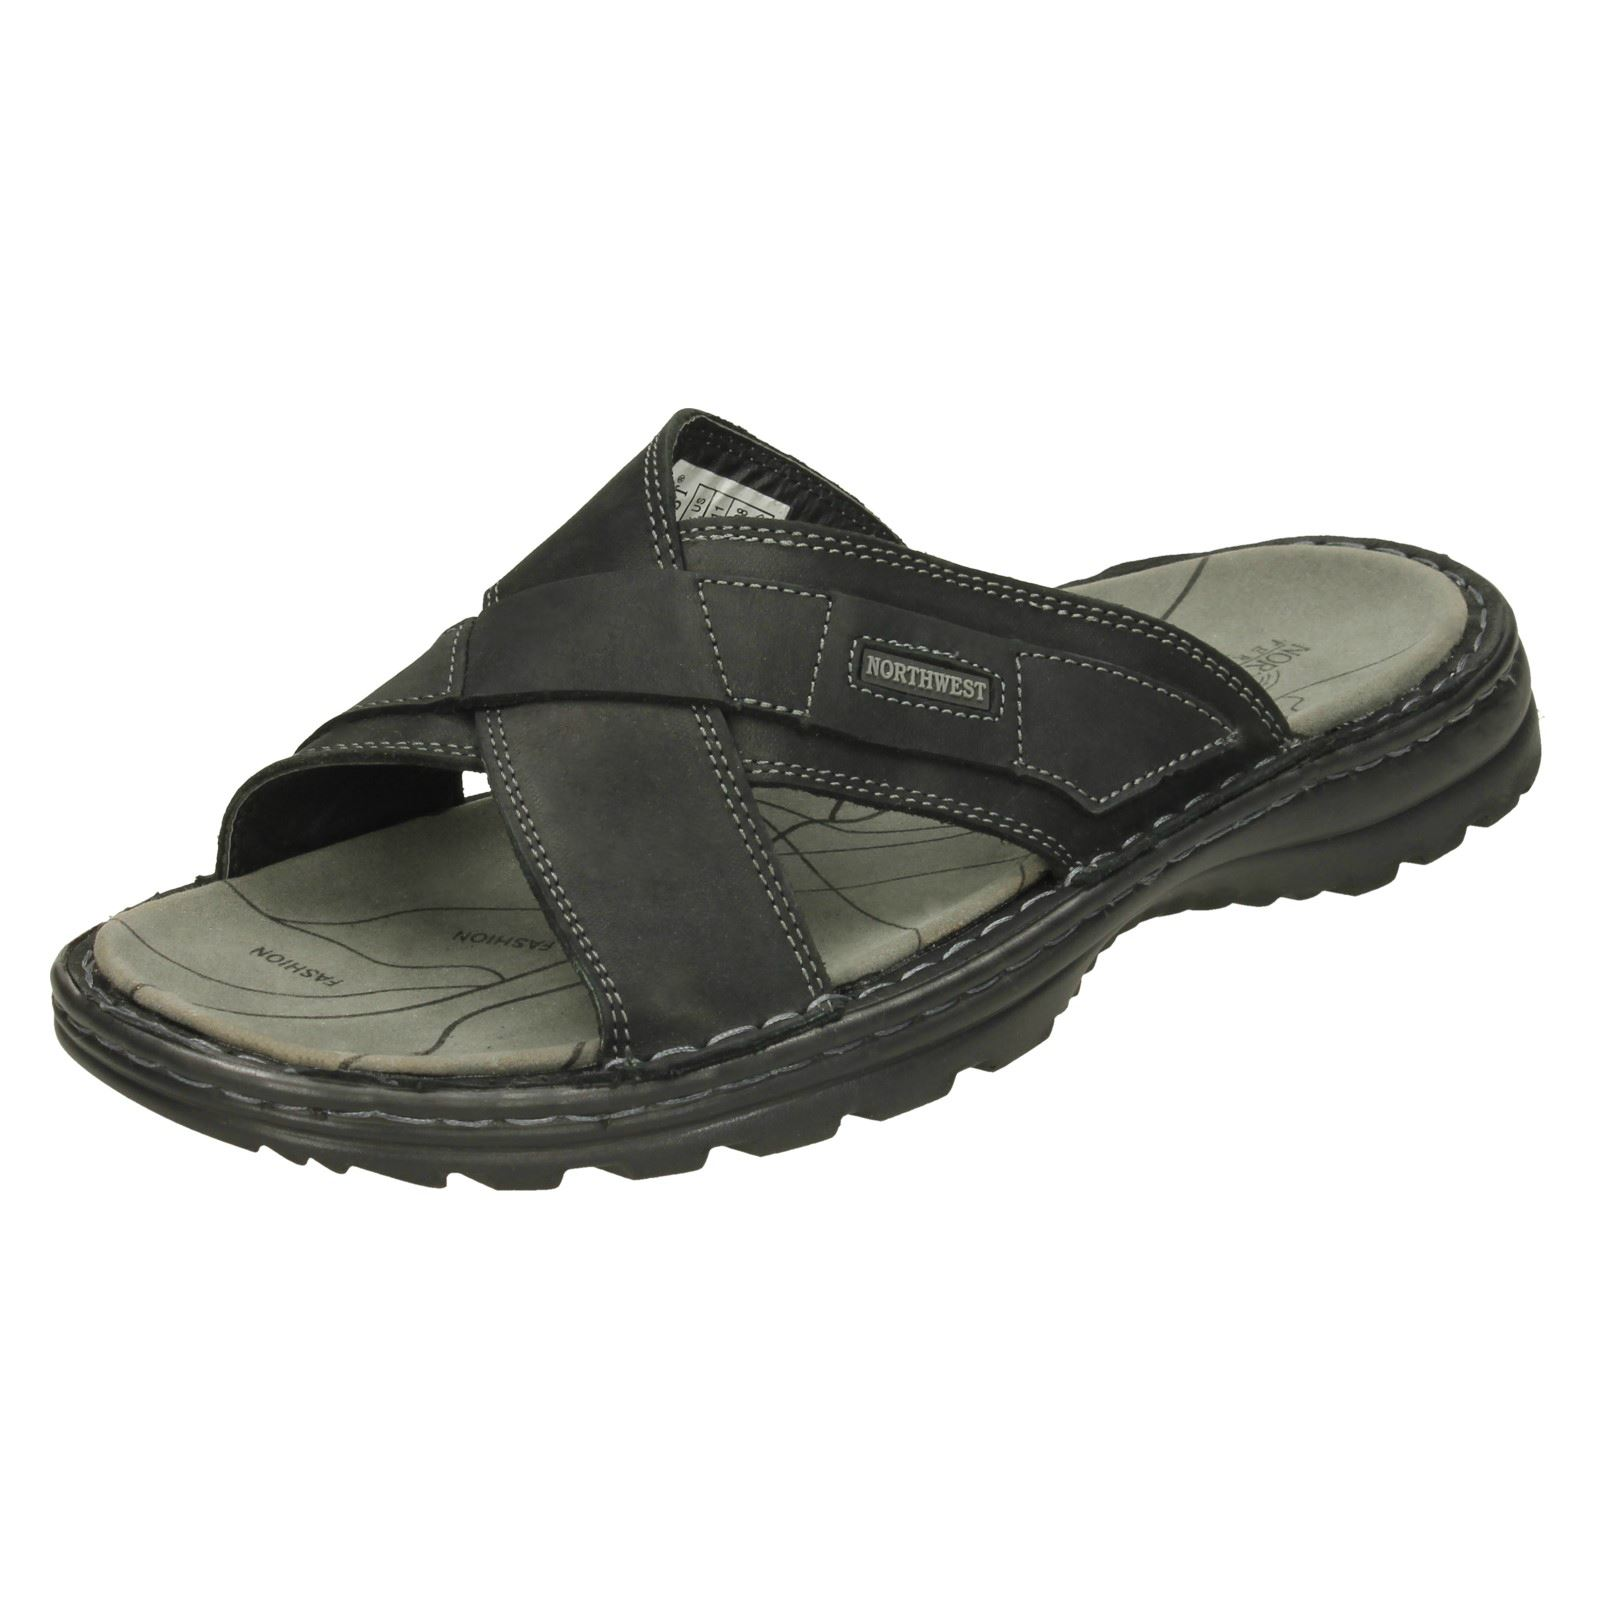 Uomo northweas casual sandali Slipon sahala